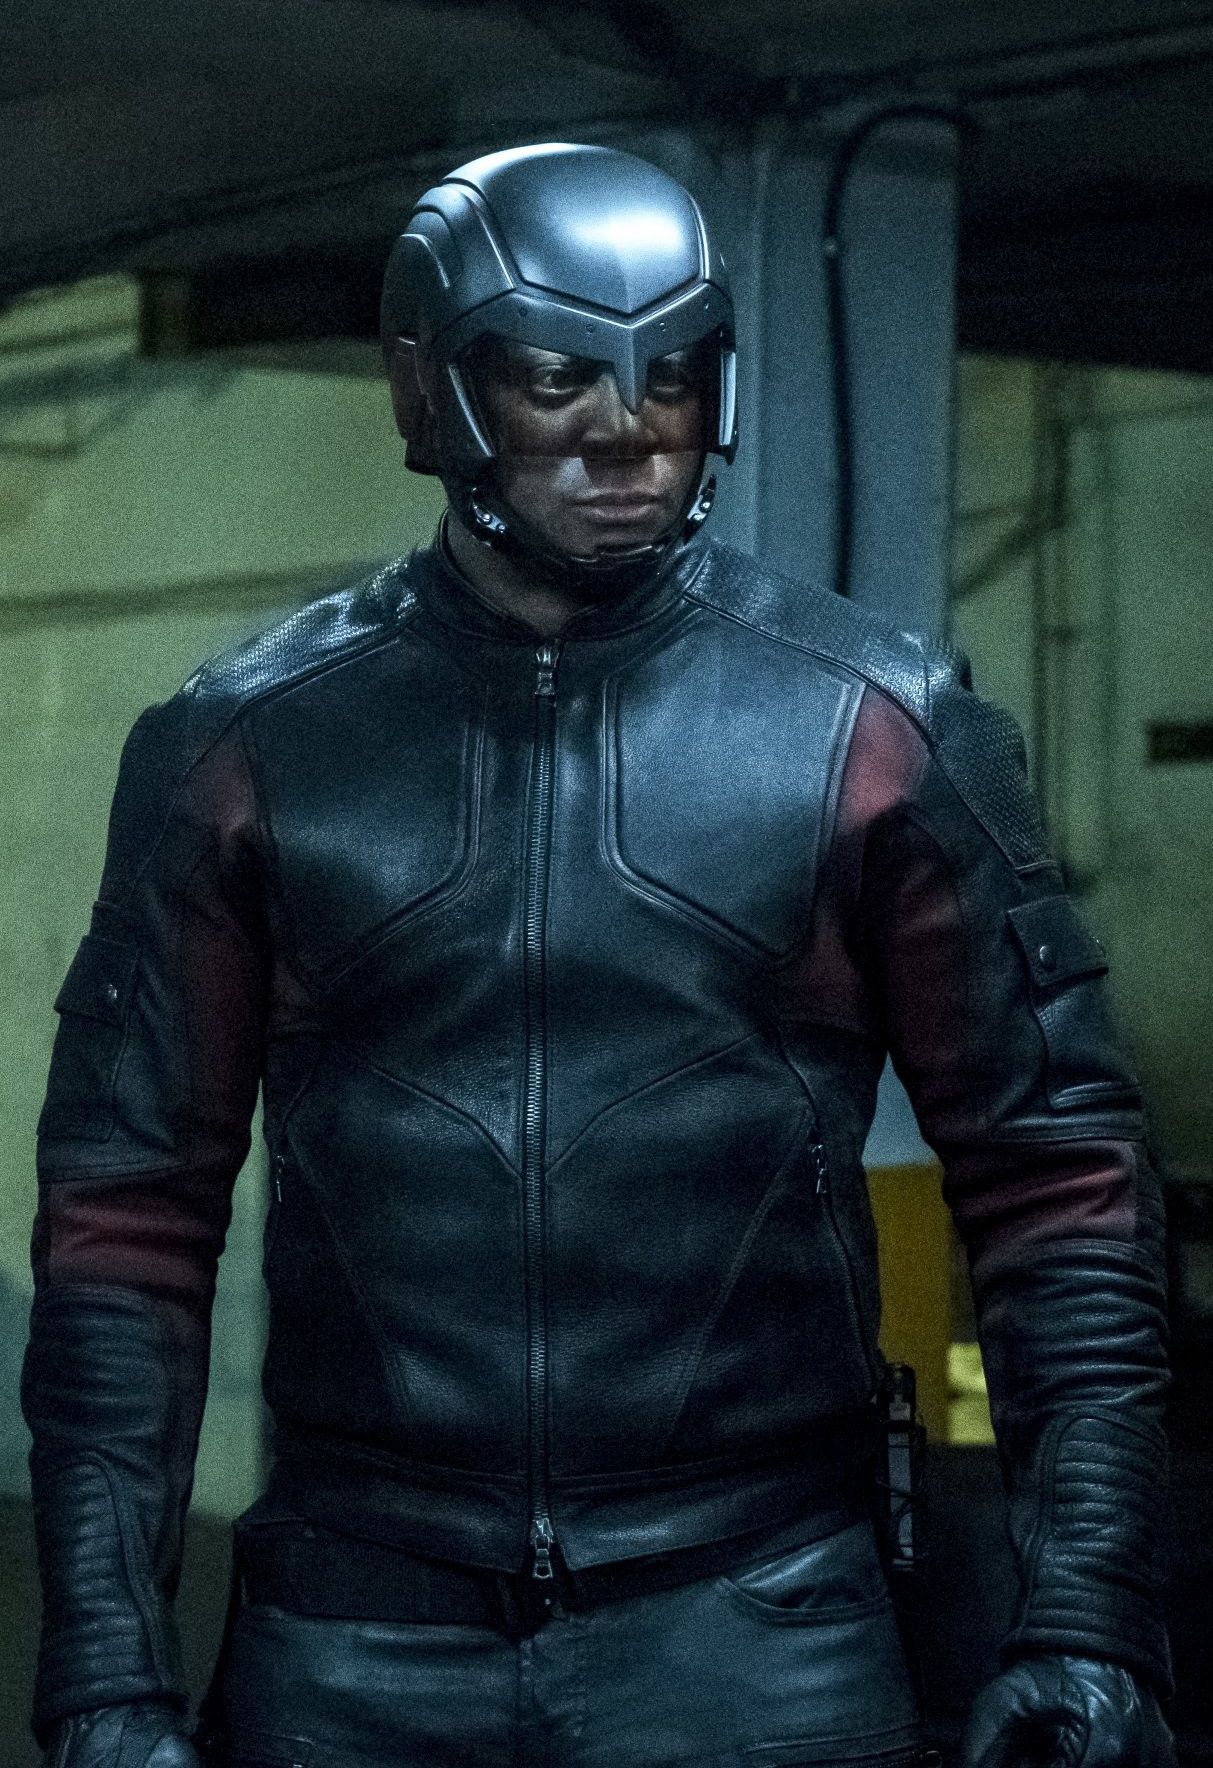 Image result for john diggle spartan costume